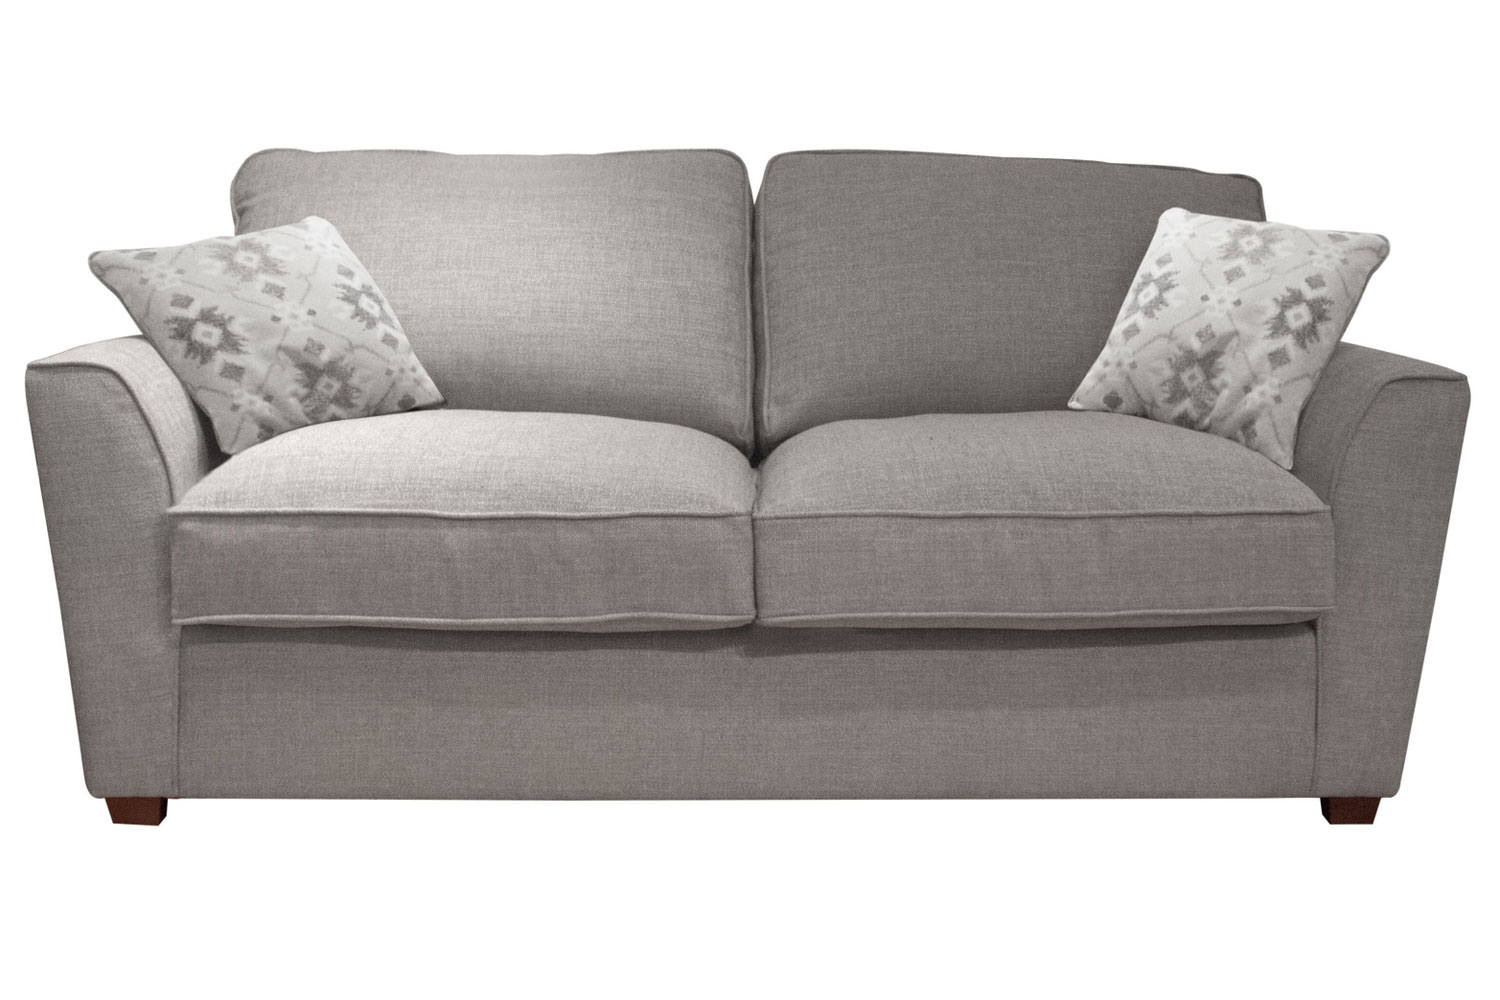 Tips For Caring For The Upholstery Of Sofas Home Interior And Furniture Ideas